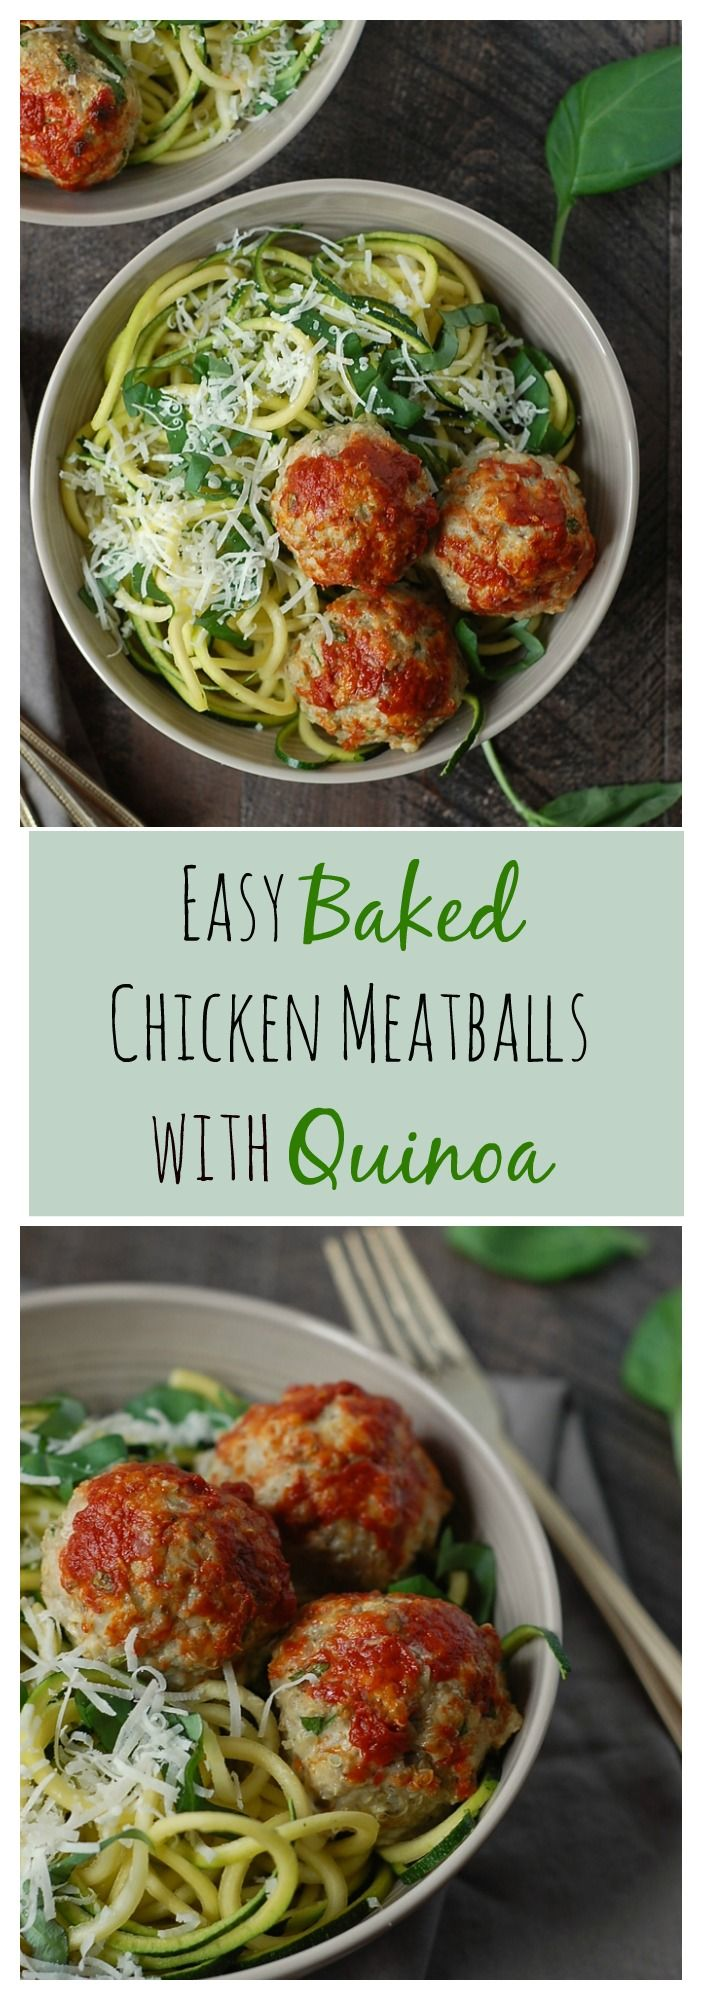 These gluten-free, freezer-friendly meatballs are a family favorite!